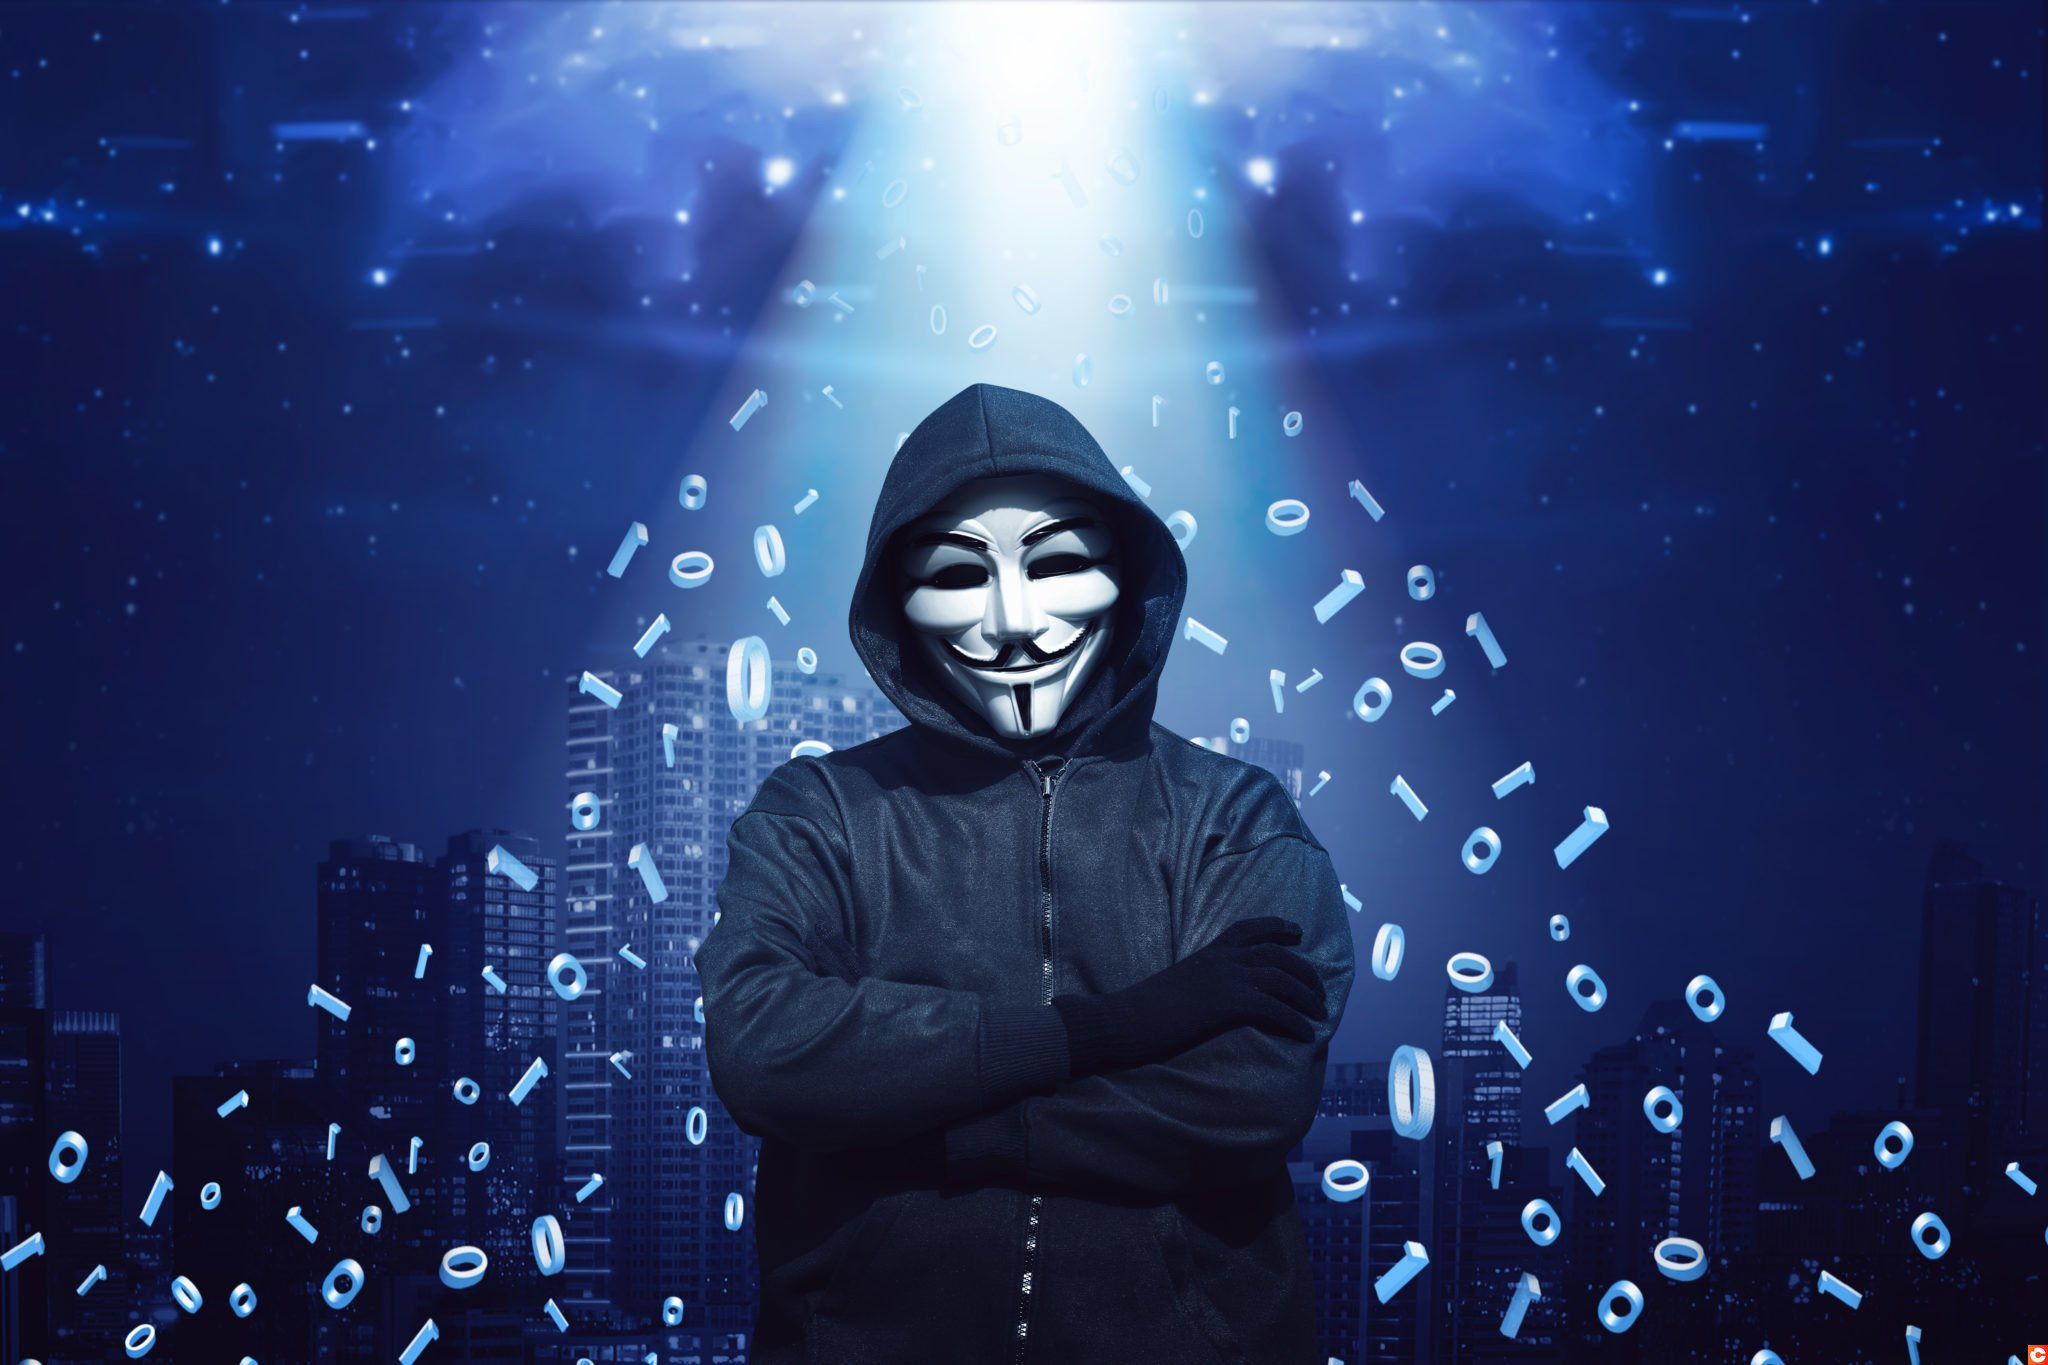 hacker in mask and gloves